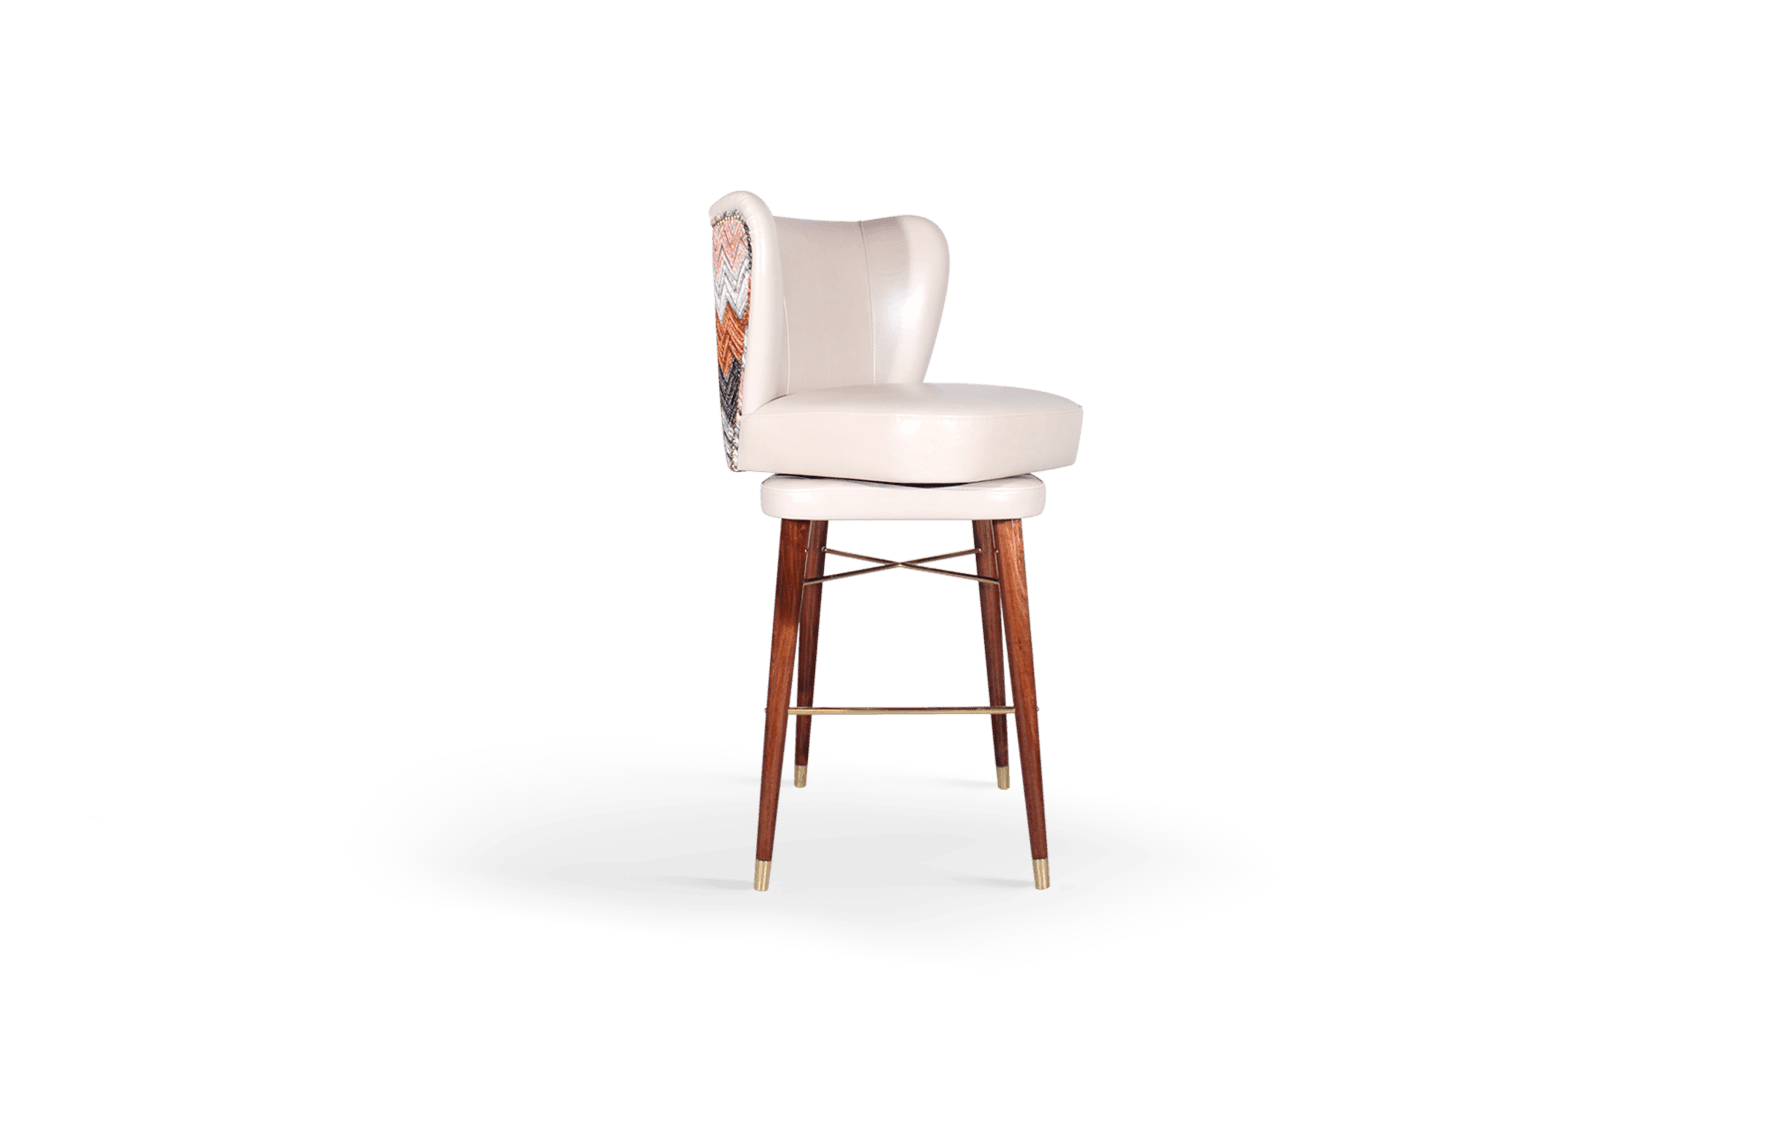 Visconti Mid-Century Modern Bar Chair in white, red, pink and grey cotton velvet